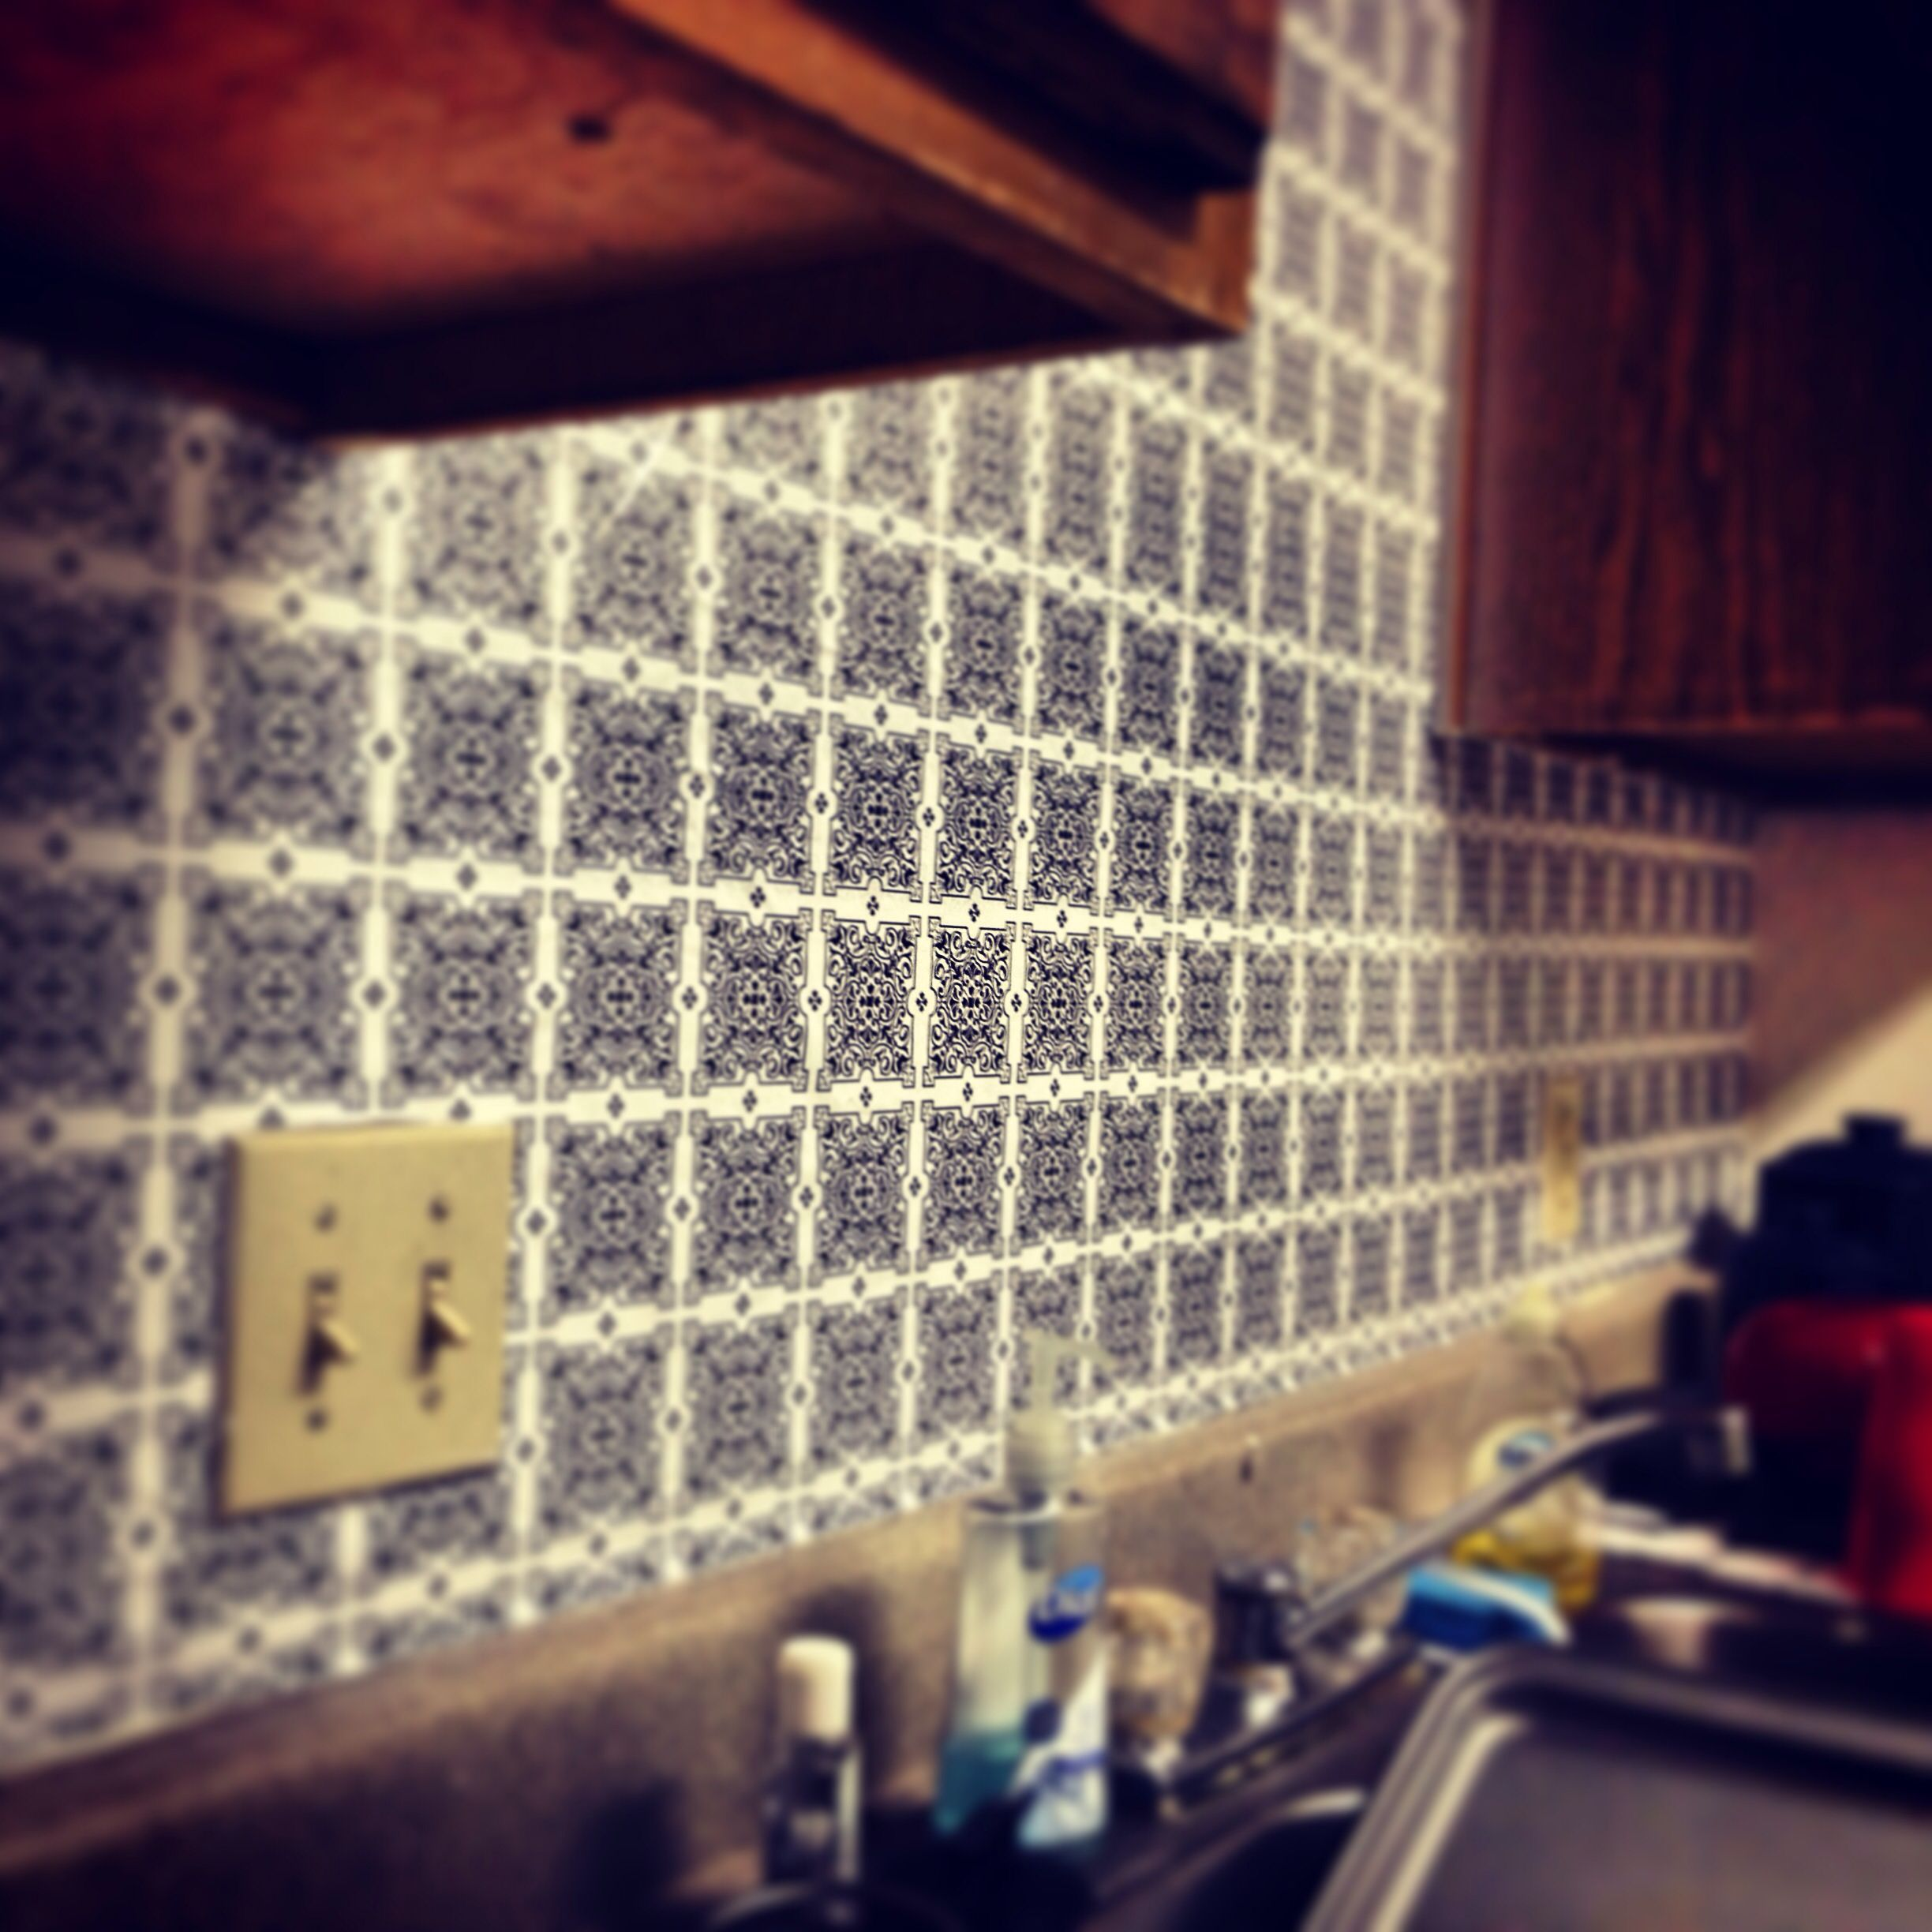 using contact paper as a backsplash or wallpaper. easy, super